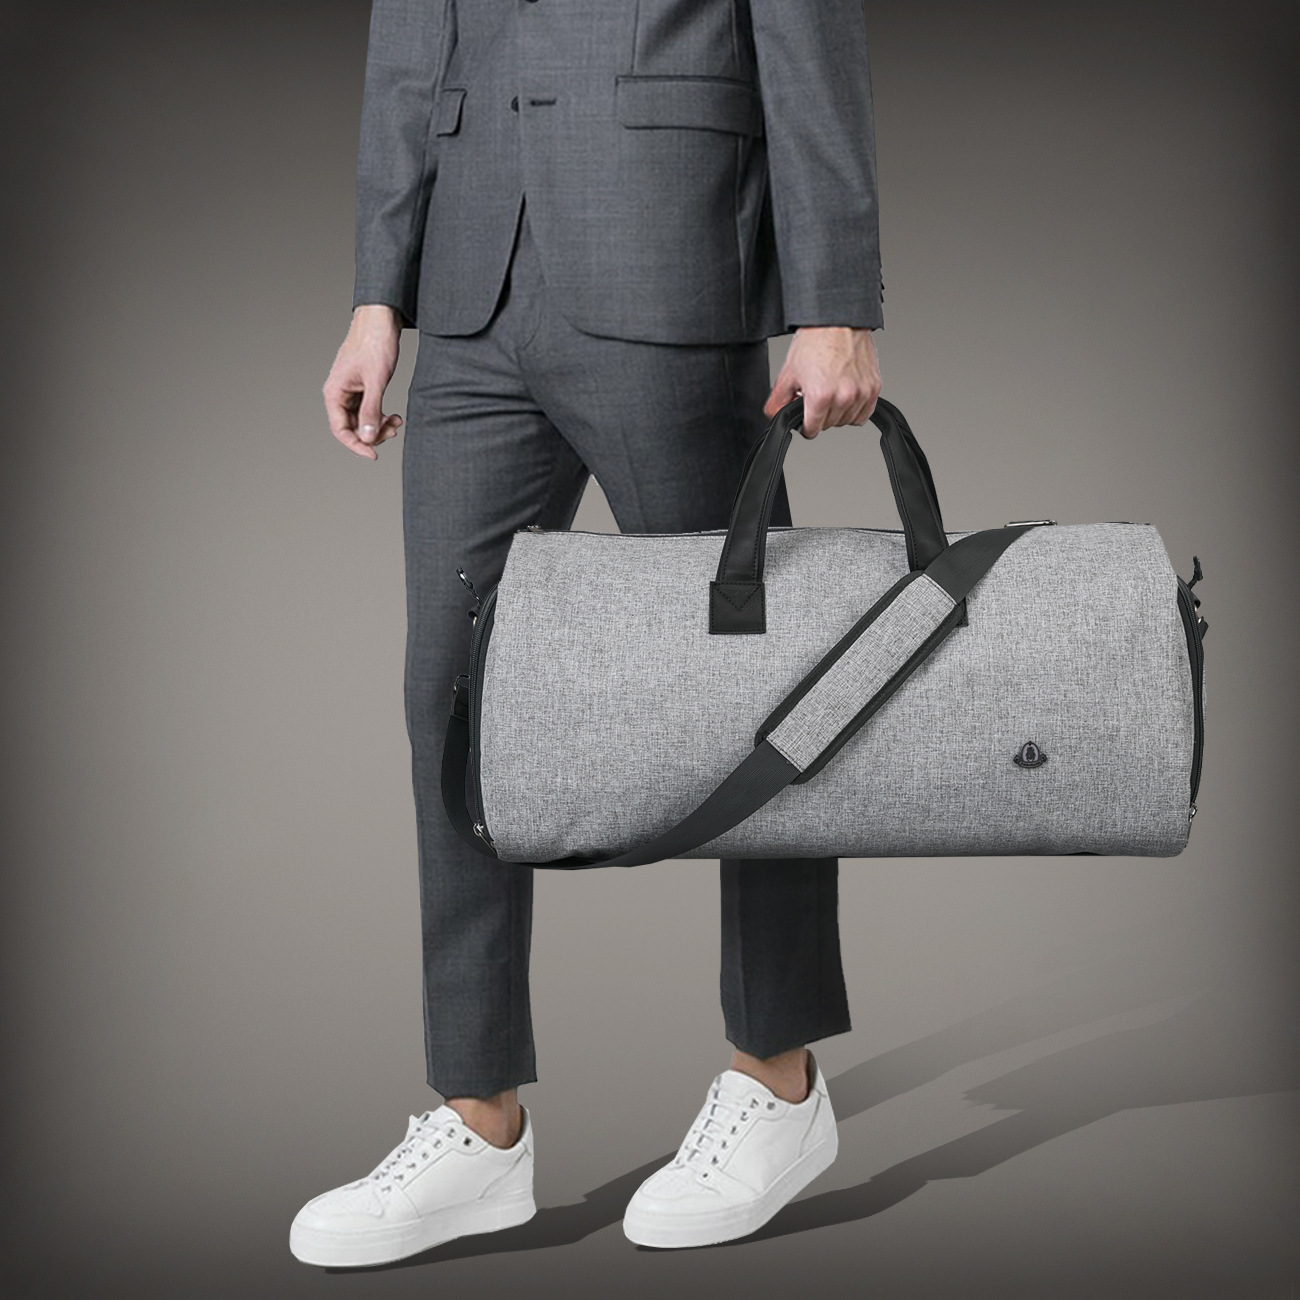 Cross Border Hot Selling 2019 New Style Waterproof Suit MEN'S Travel Bag Multi-functional Large-Volume Business Bag